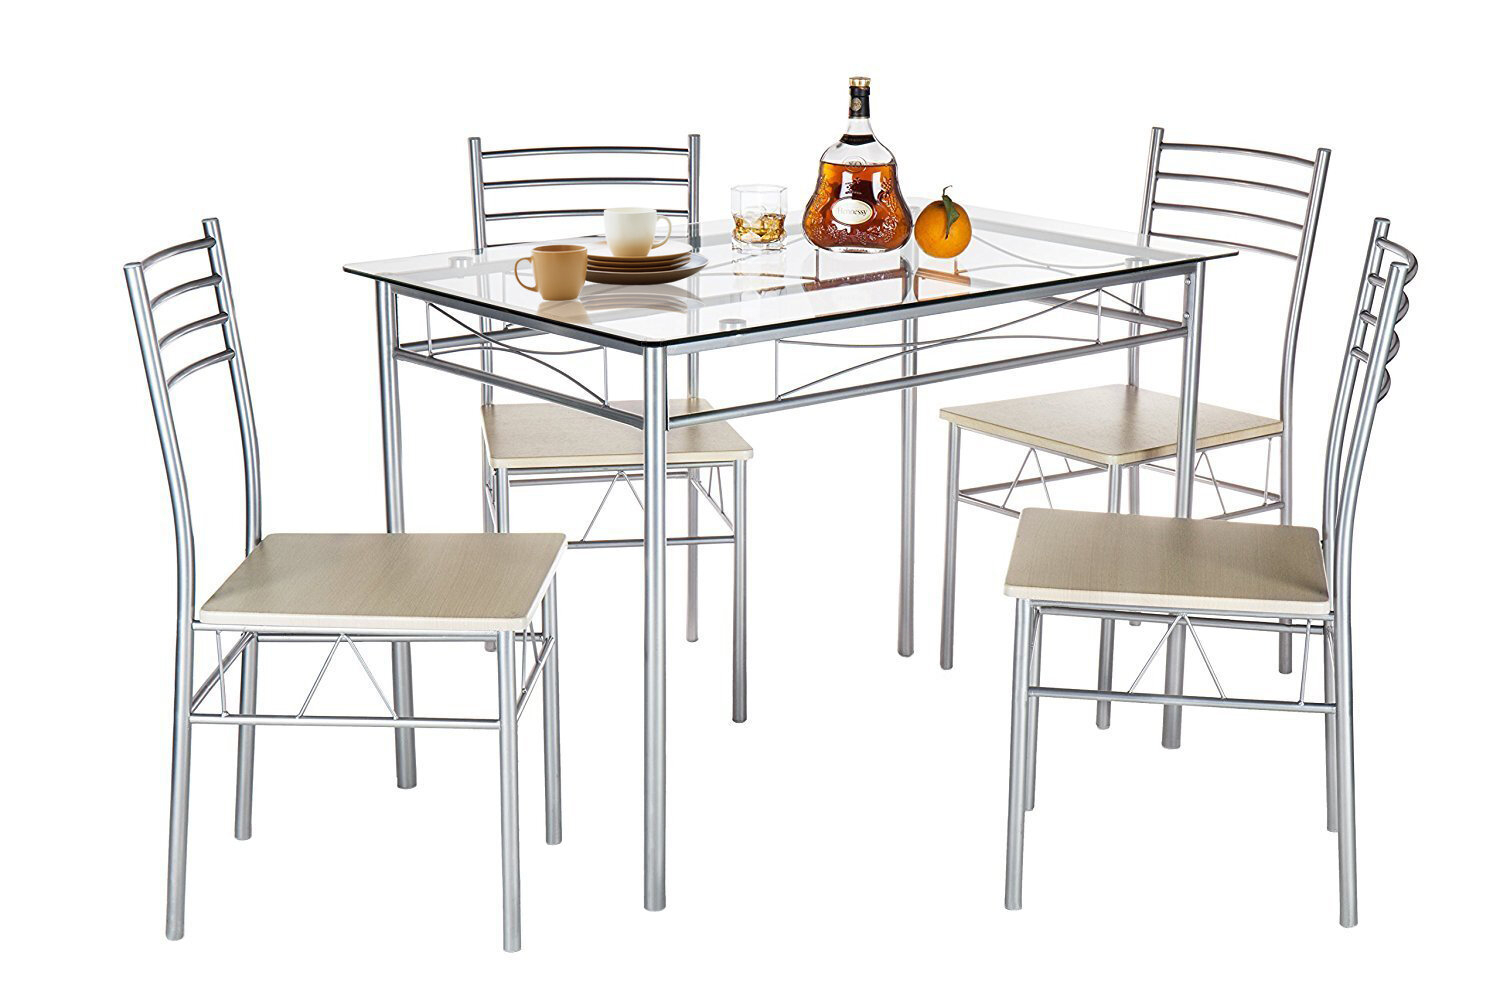 Liles 5 Piece Breakfast Nook Dining Set Regarding Most Popular Reinert 5 Piece Dining Sets (View 2 of 20)